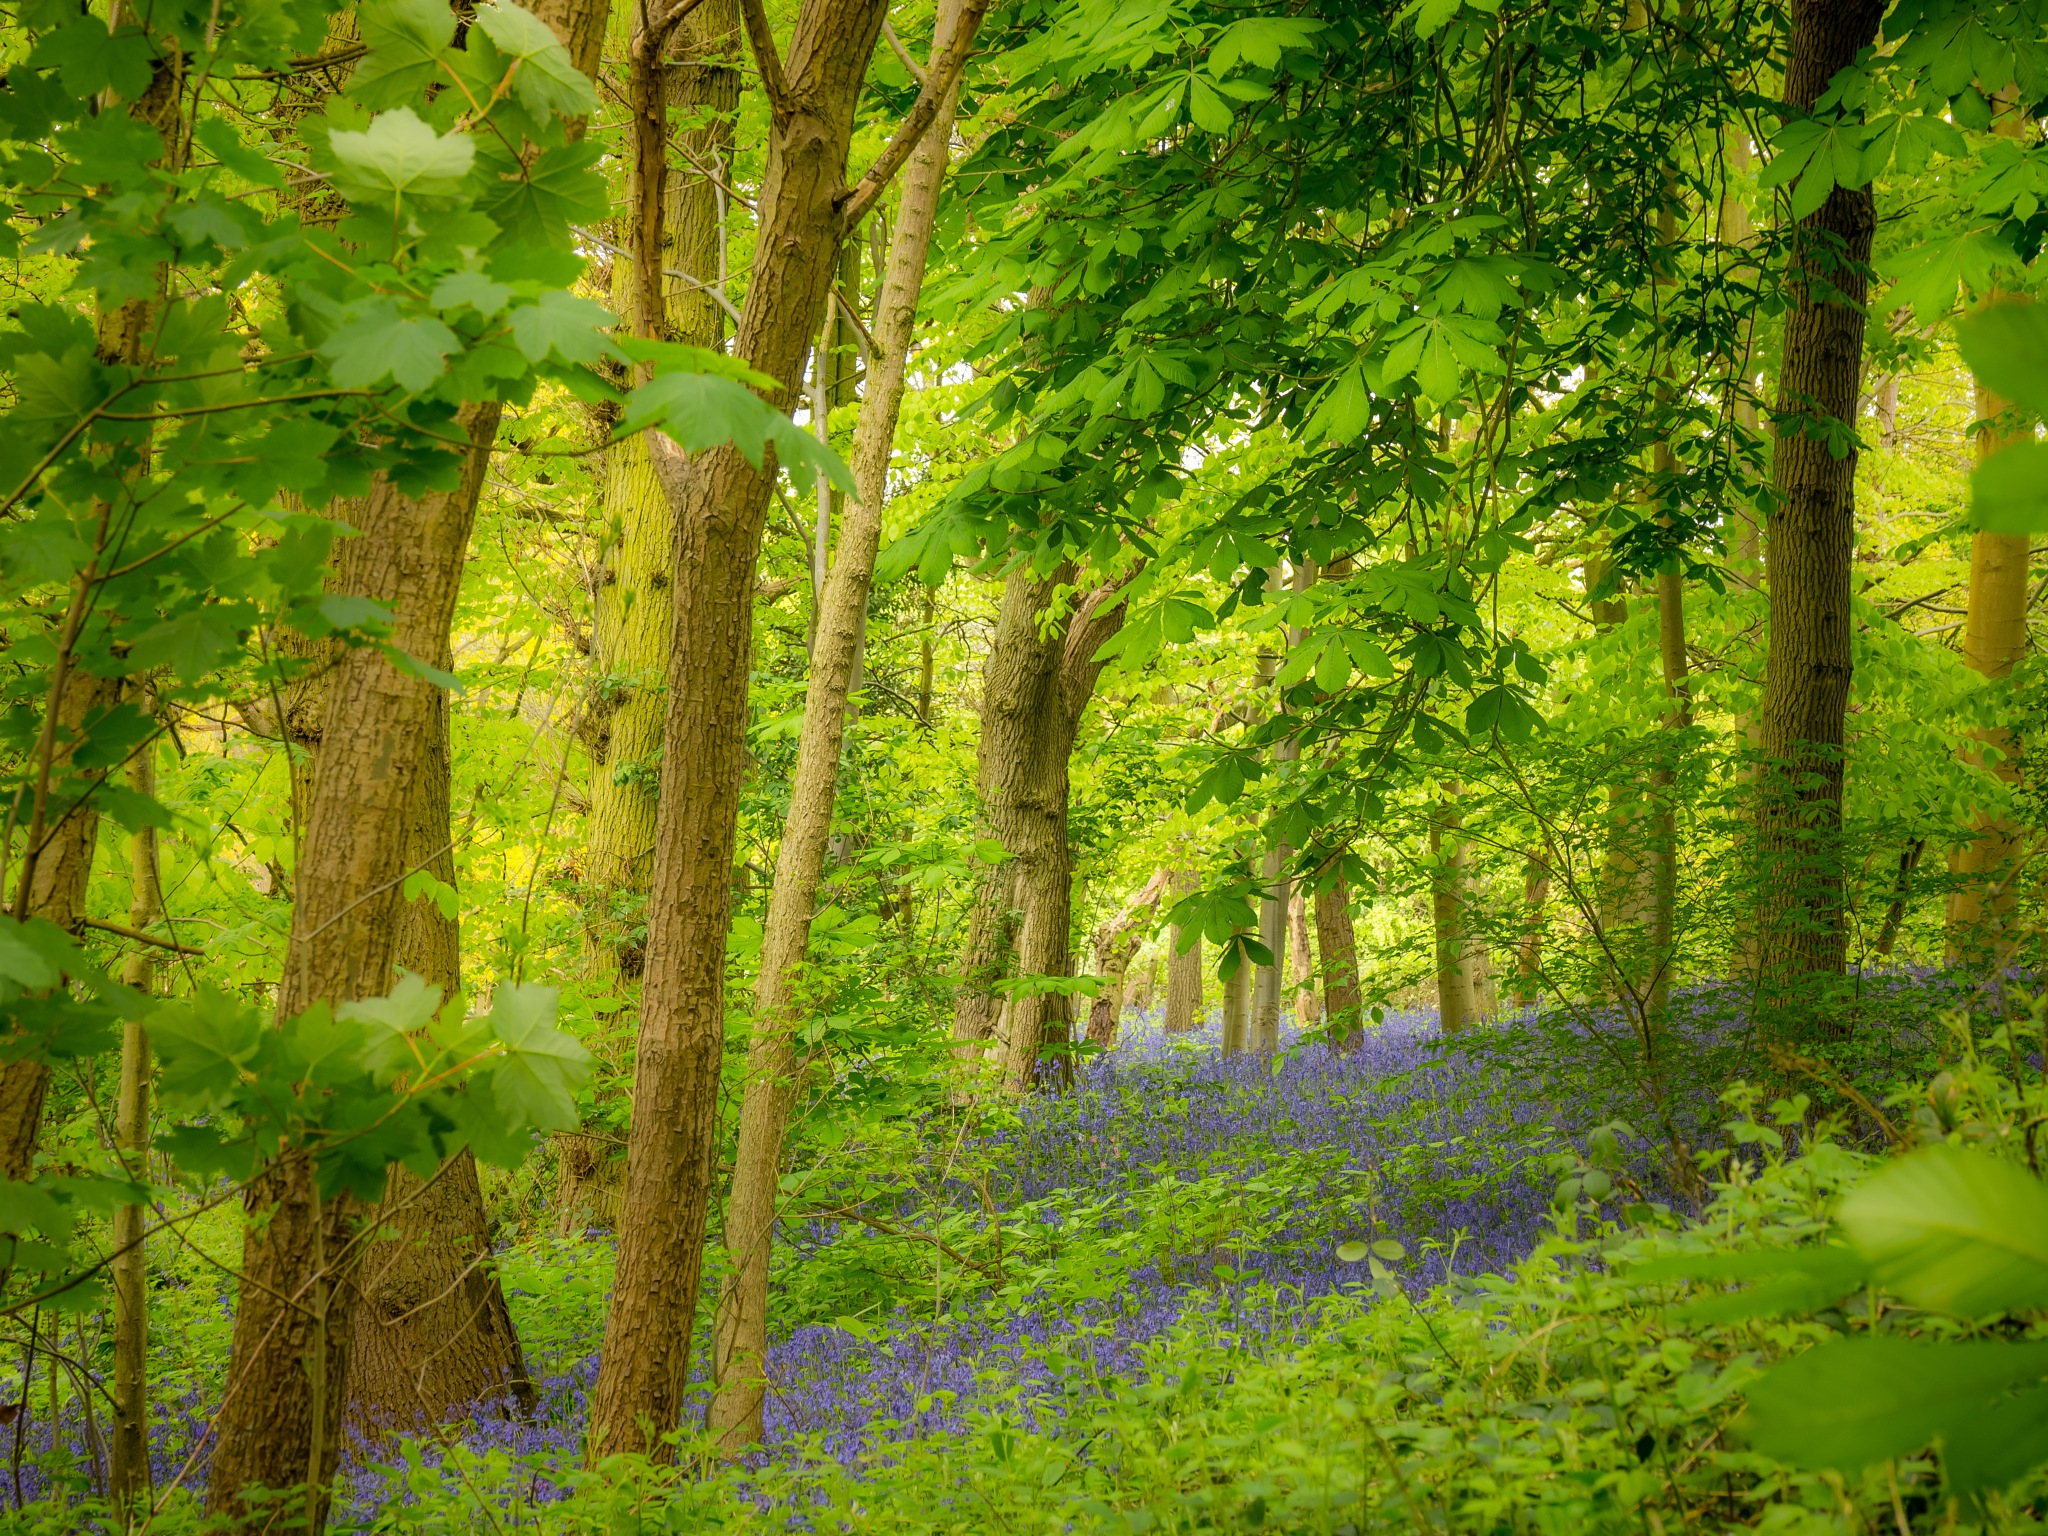 Bluebells on a bank by Sarah Walters